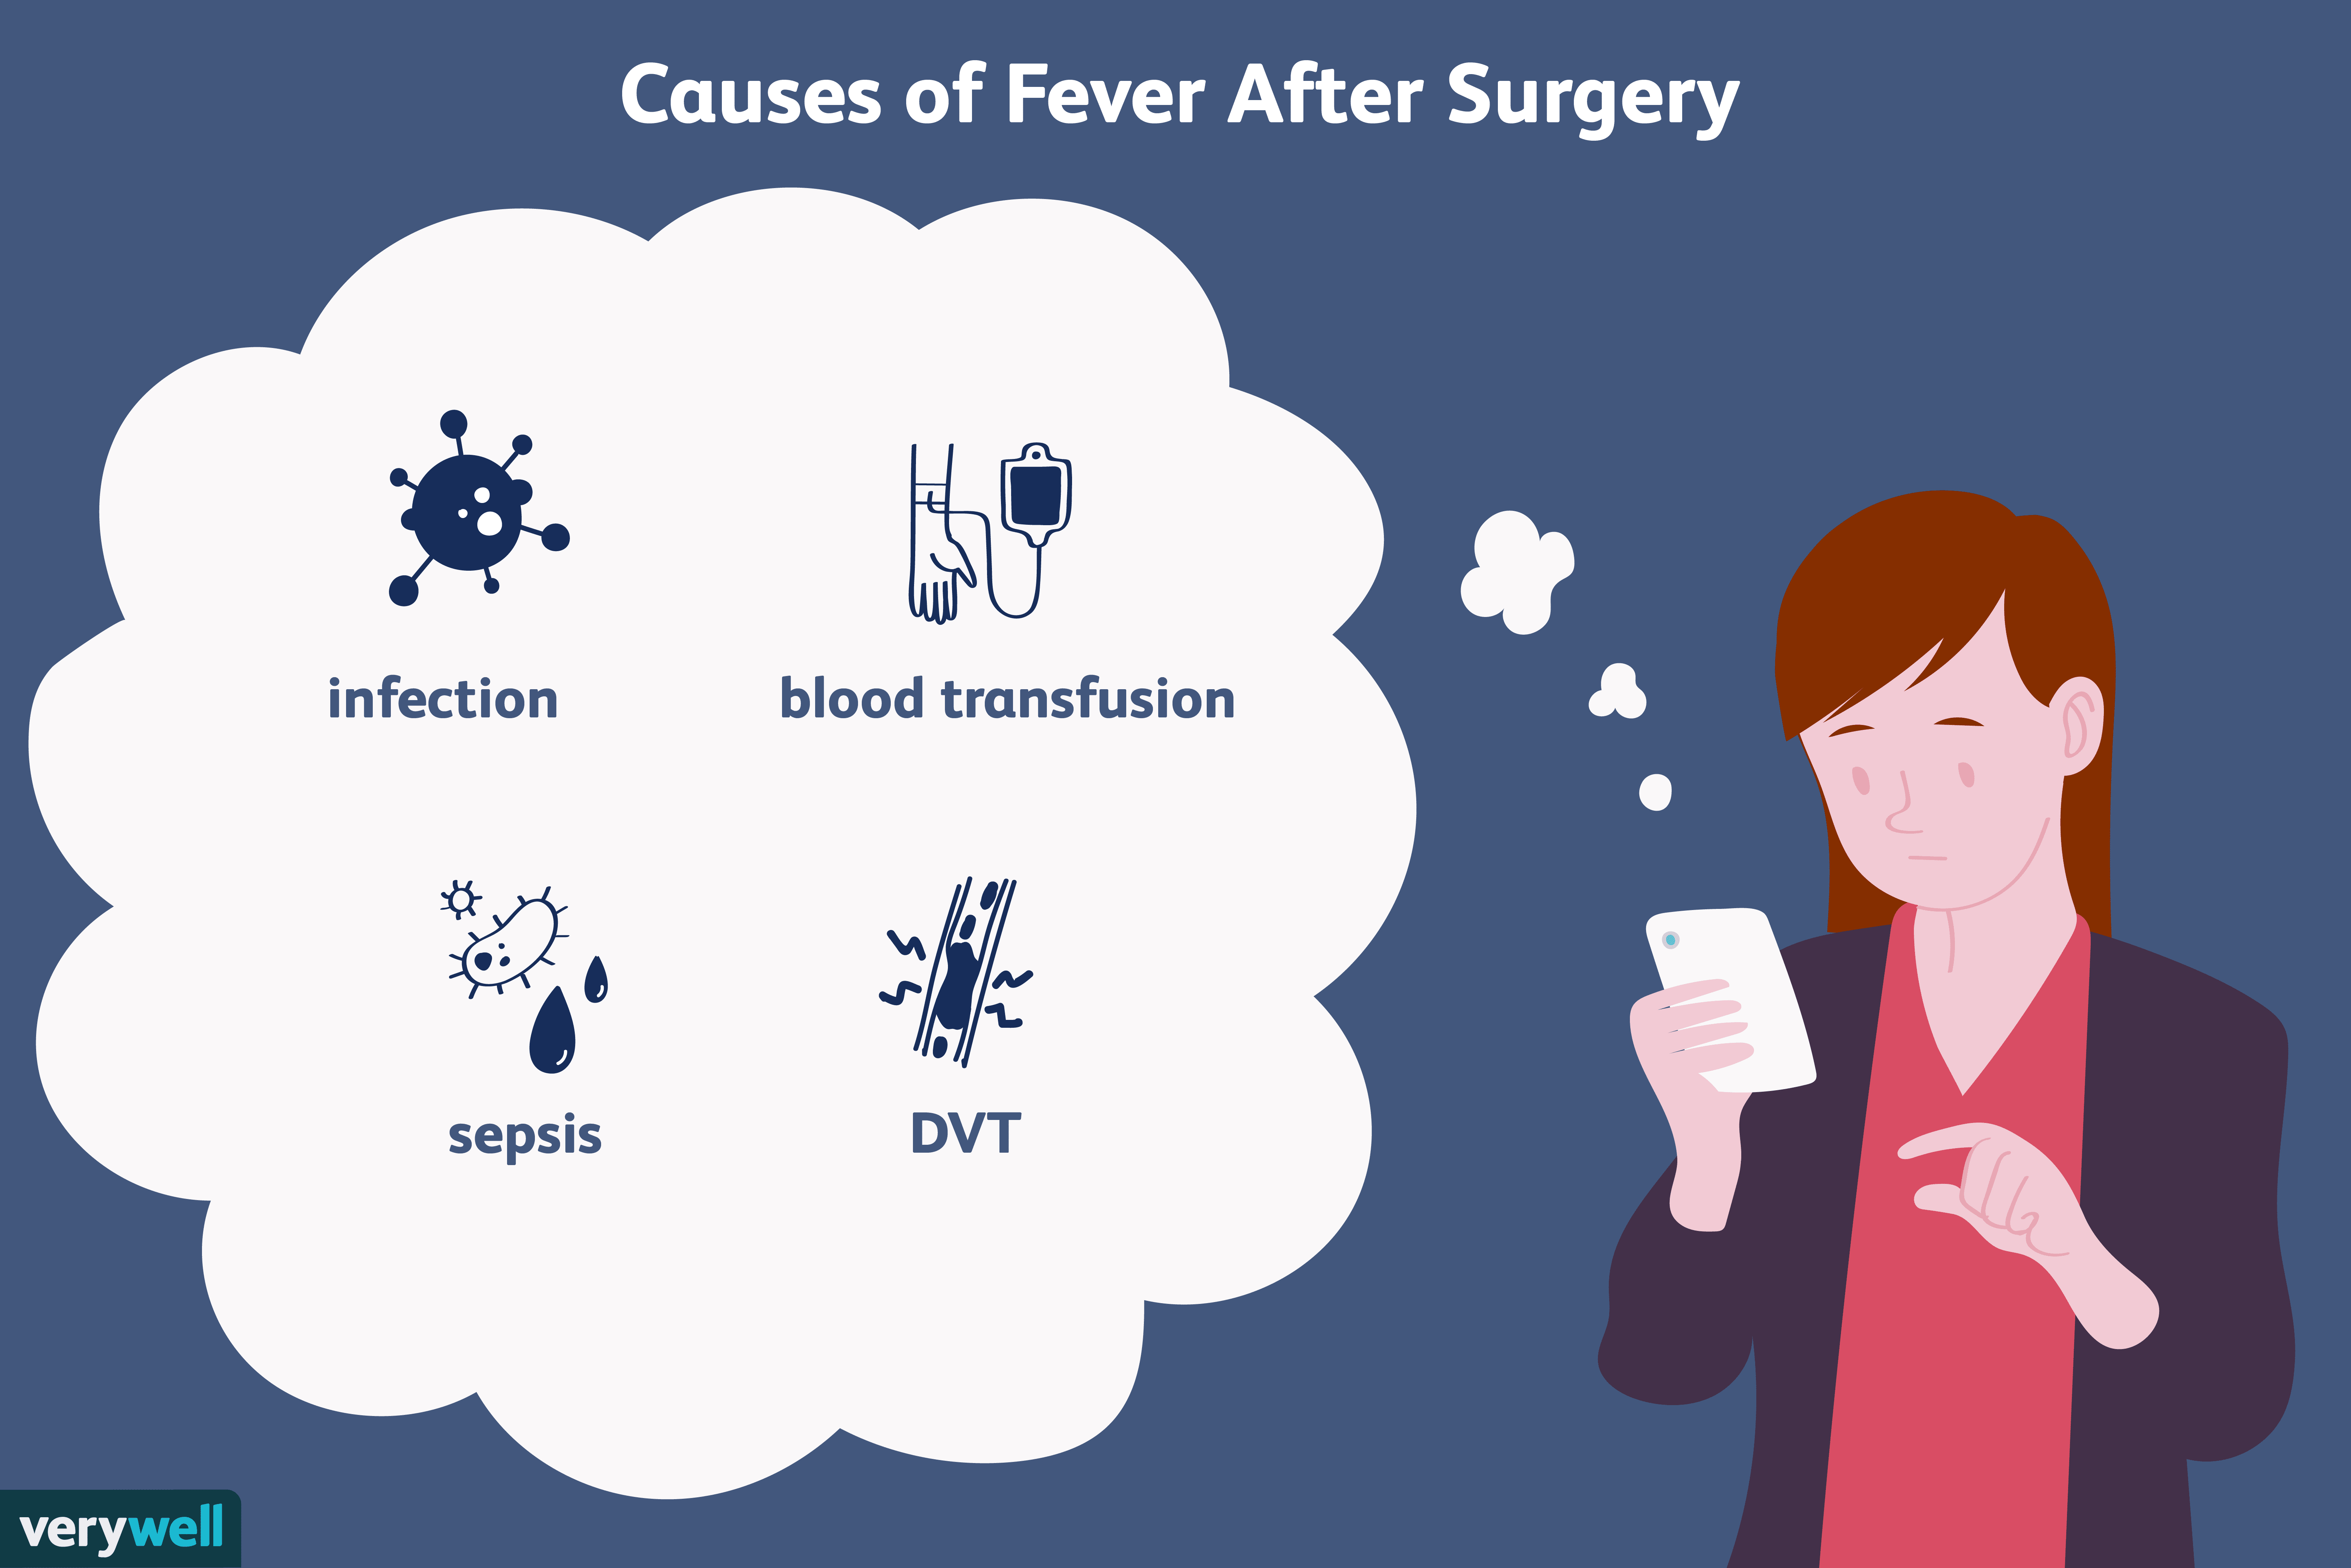 When Does Fever After Surgery Become a Concern?